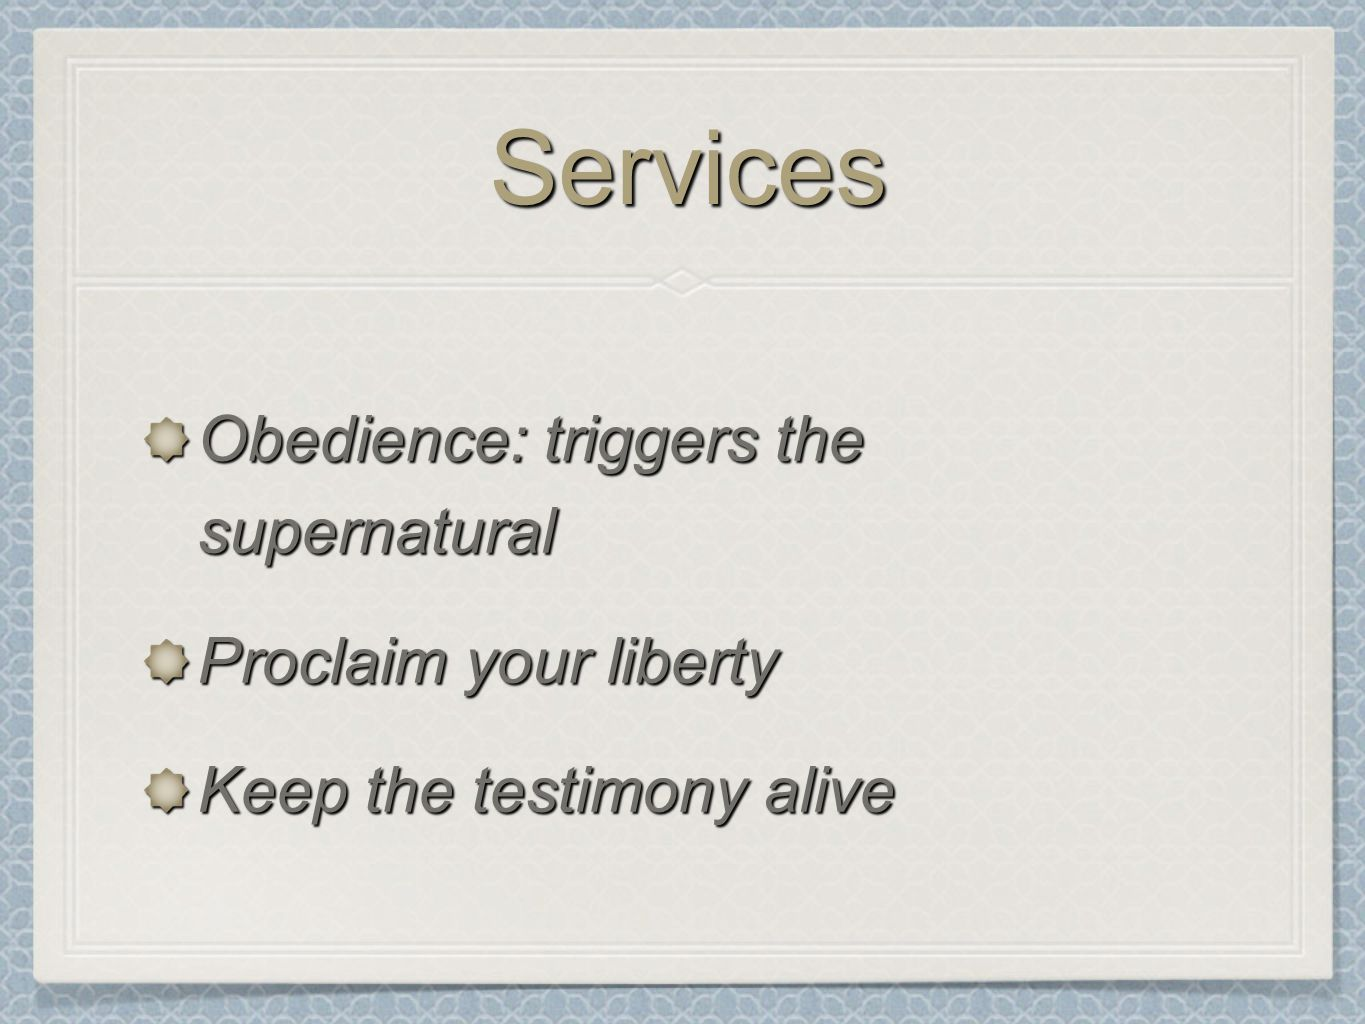 ServicesServices Obedience: triggers the supernatural Proclaim your liberty Keep the testimony alive